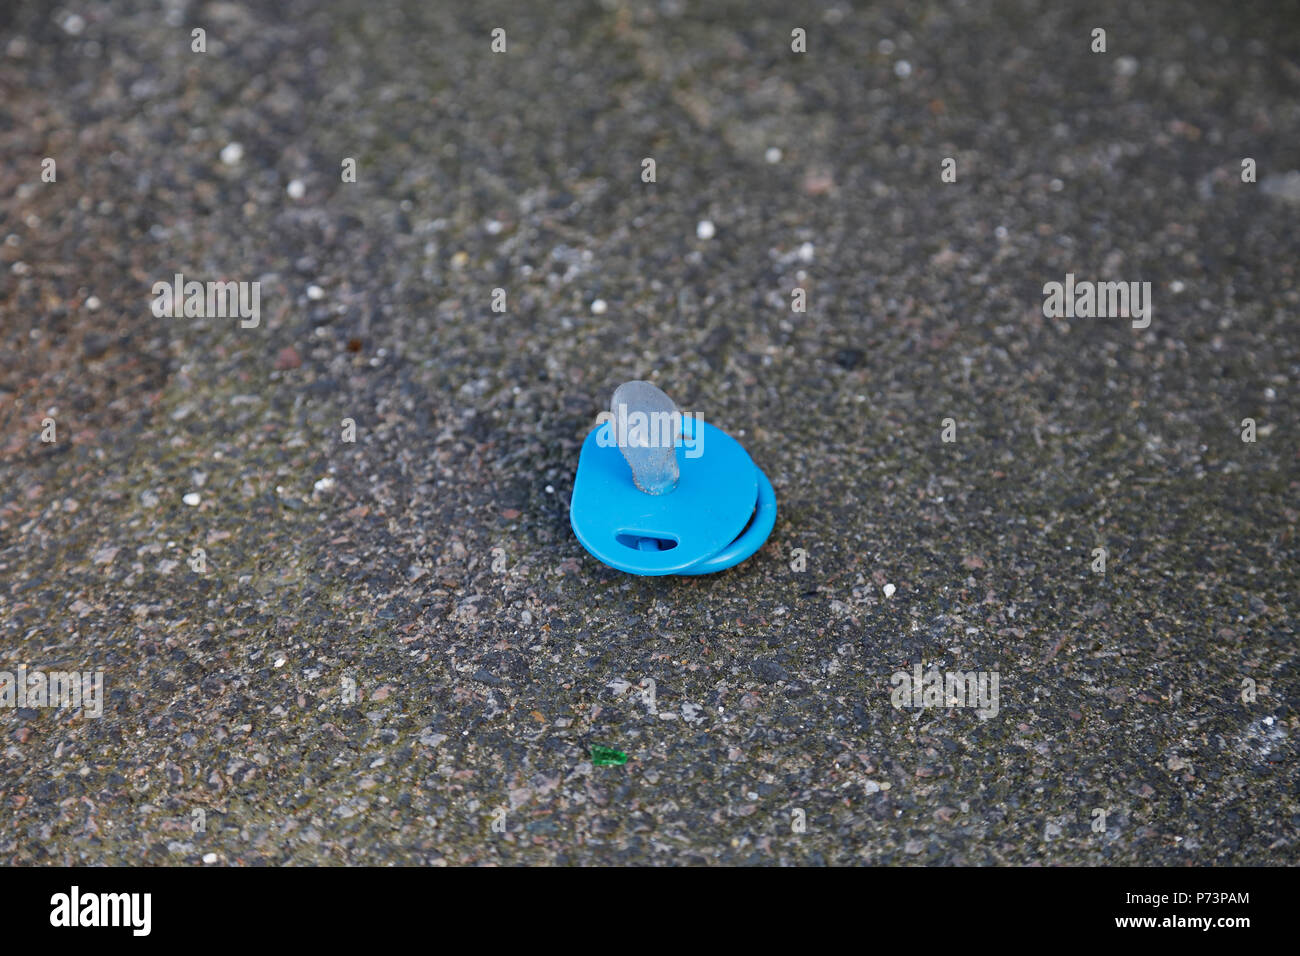 Discarded babies dummy on path - Stock Image